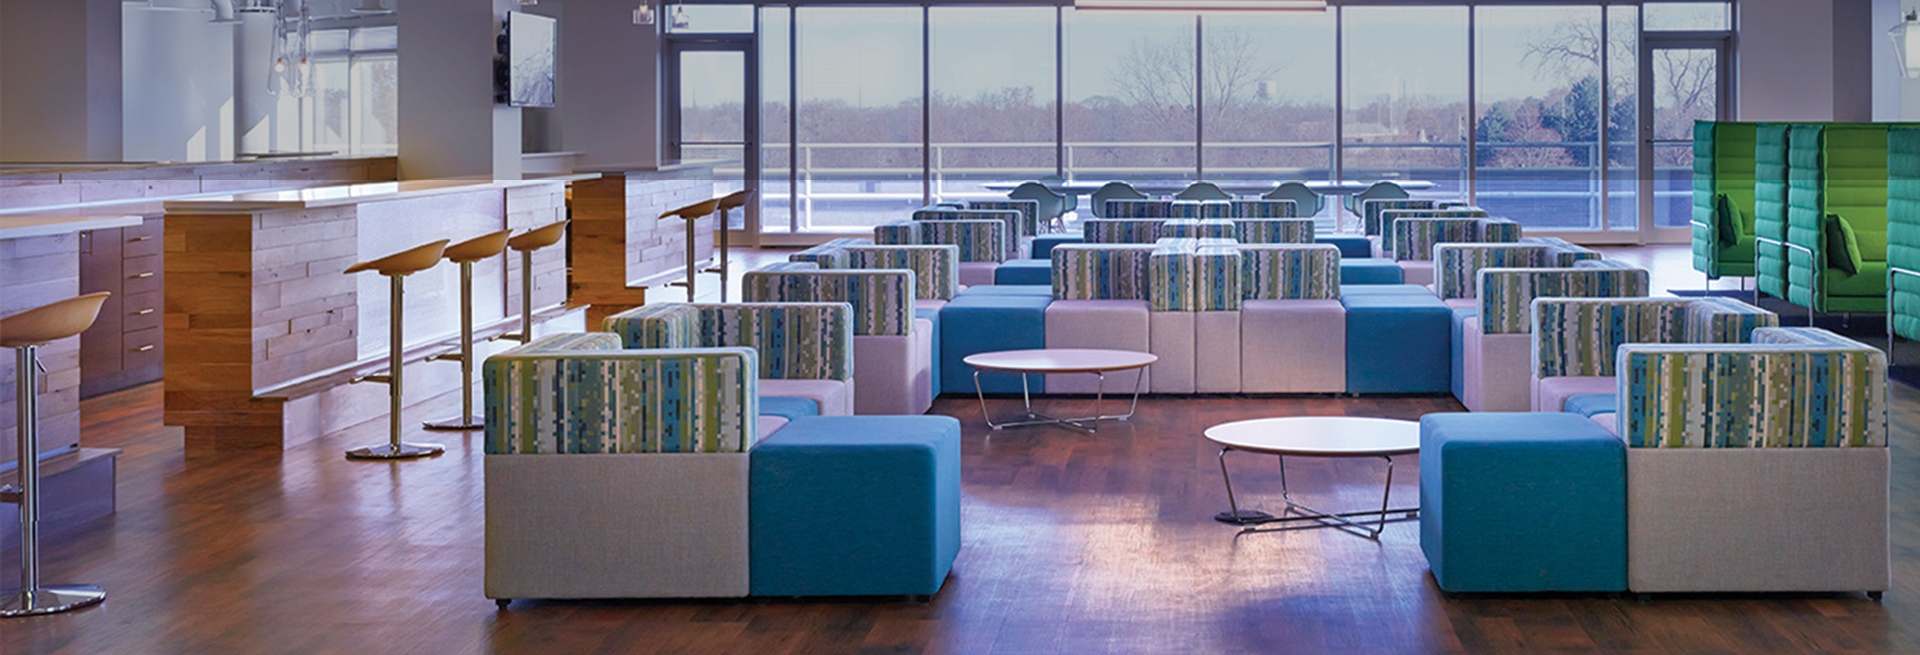 Thonet   Modern Commercial Modular Furniture For Lobbies, Airports,  Colleges And Reception Areas